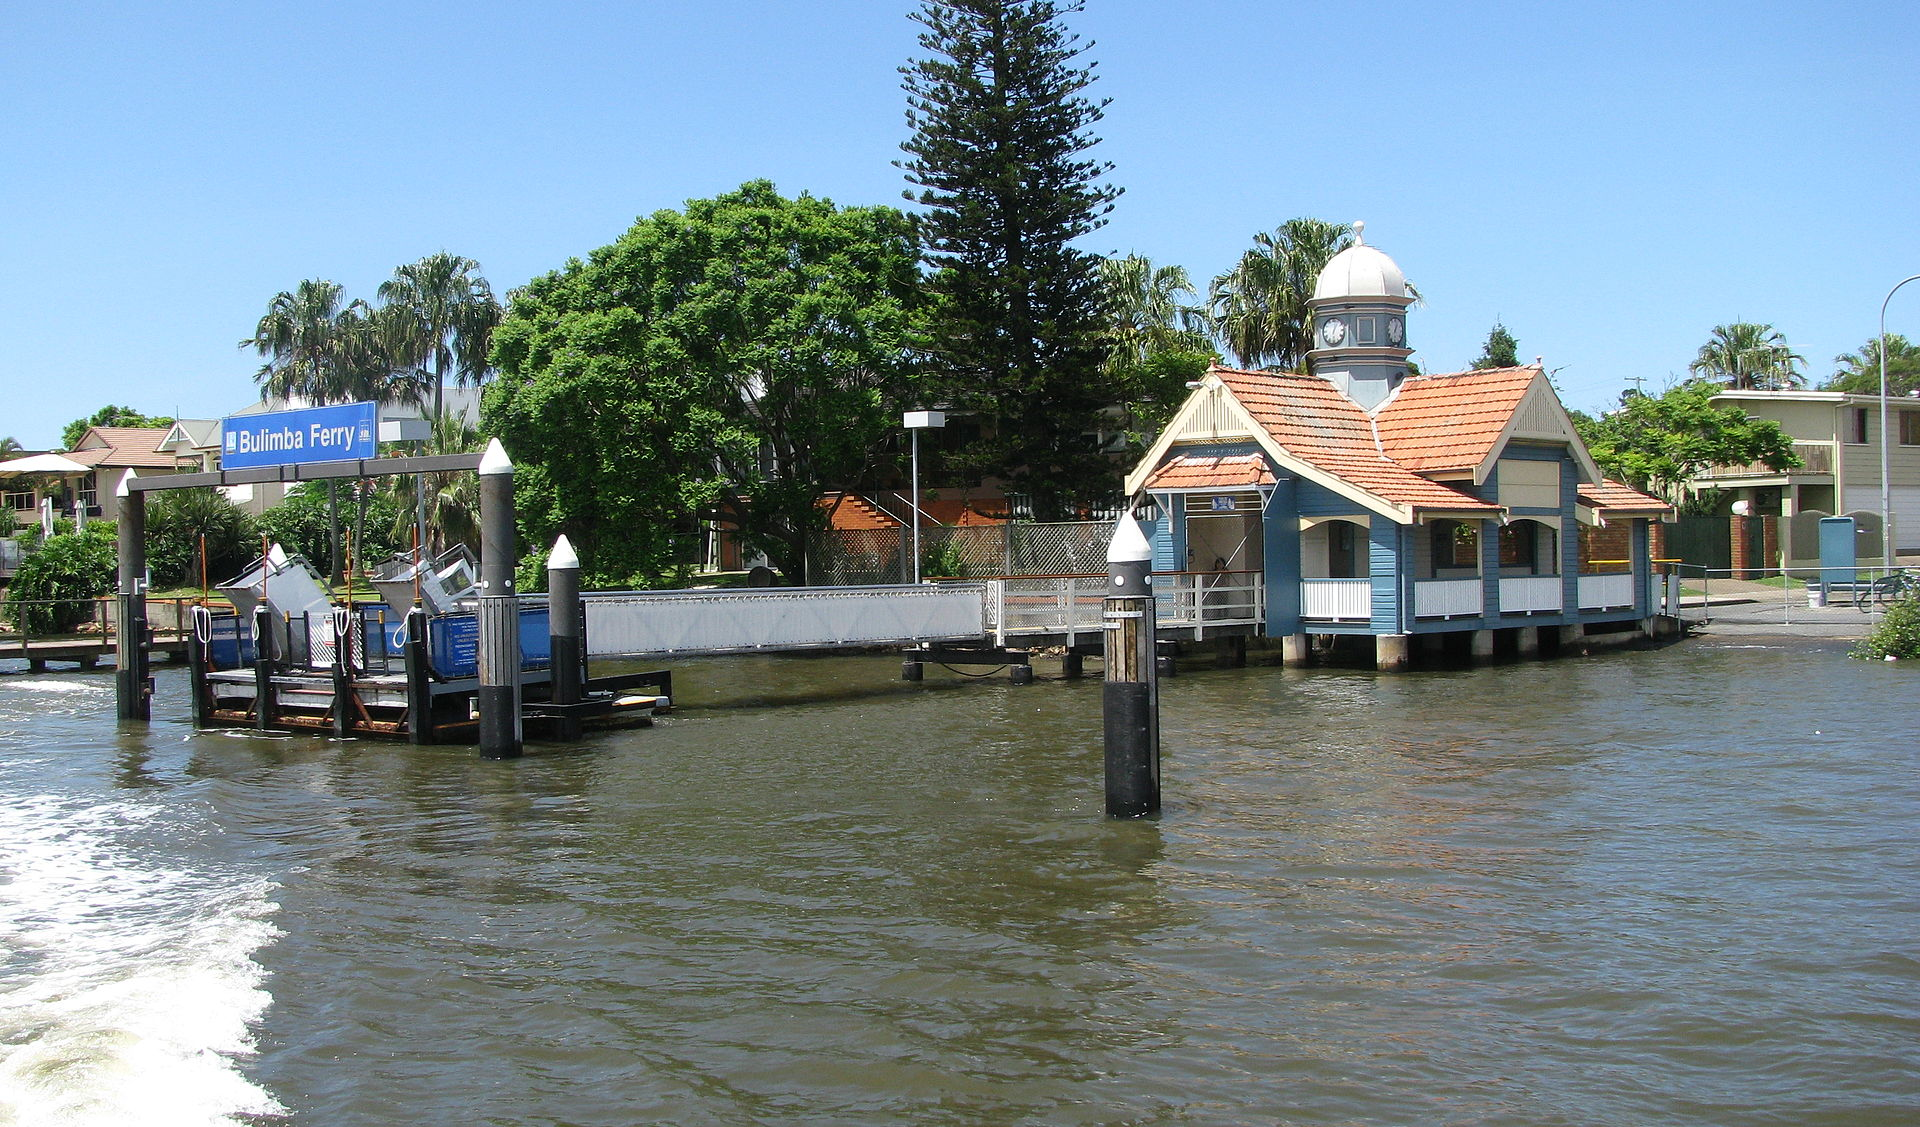 Servicing of several ferry routes across the Brisbane River